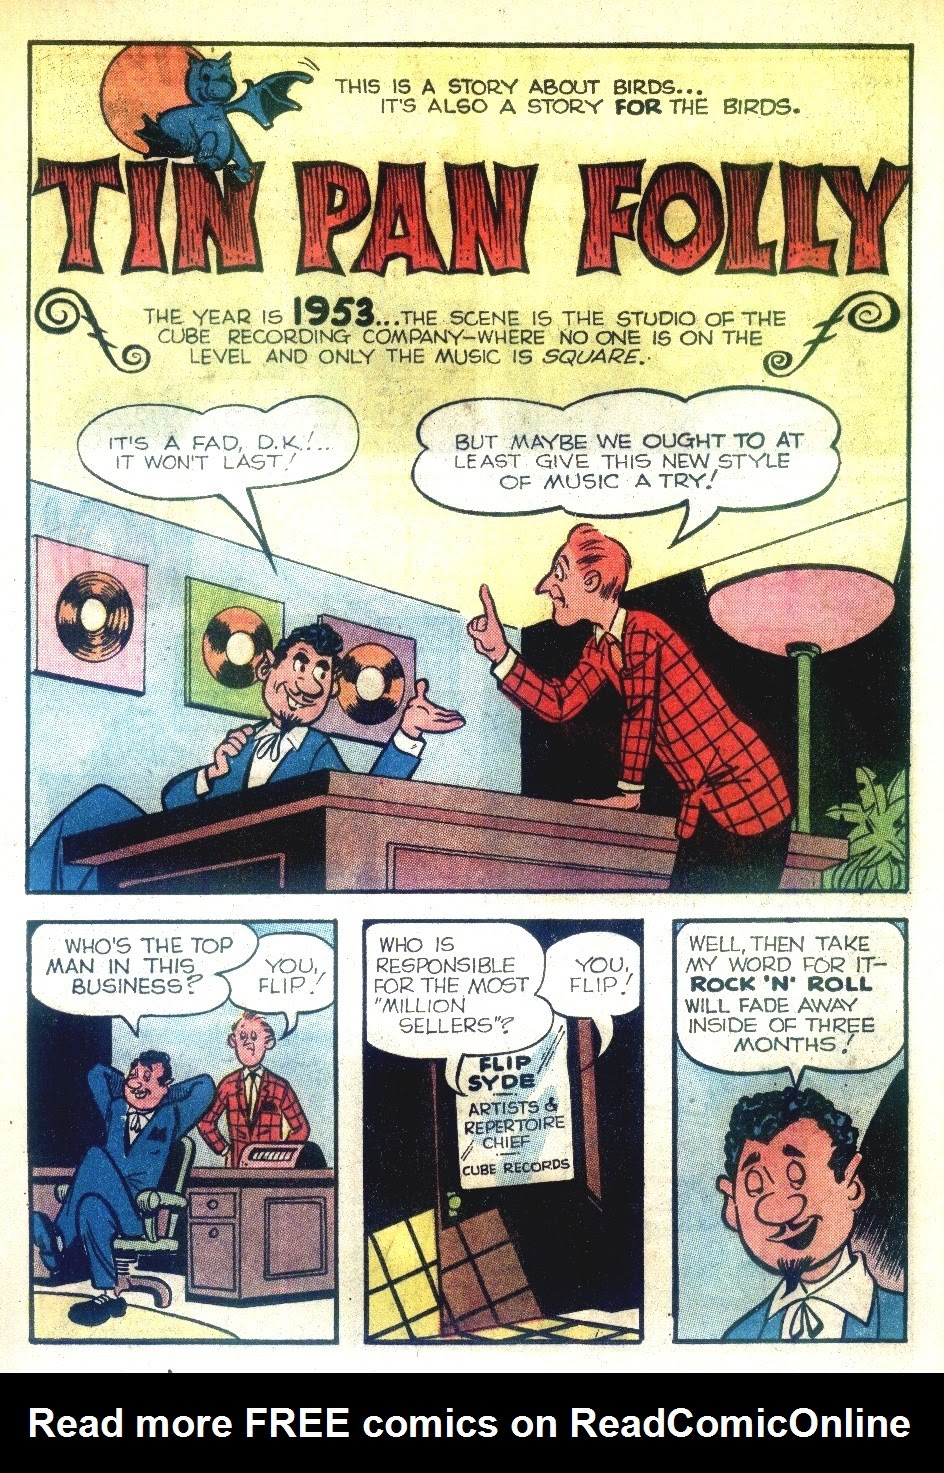 Read online Tales Calculated to Drive You Bats comic -  Issue #5 - 13